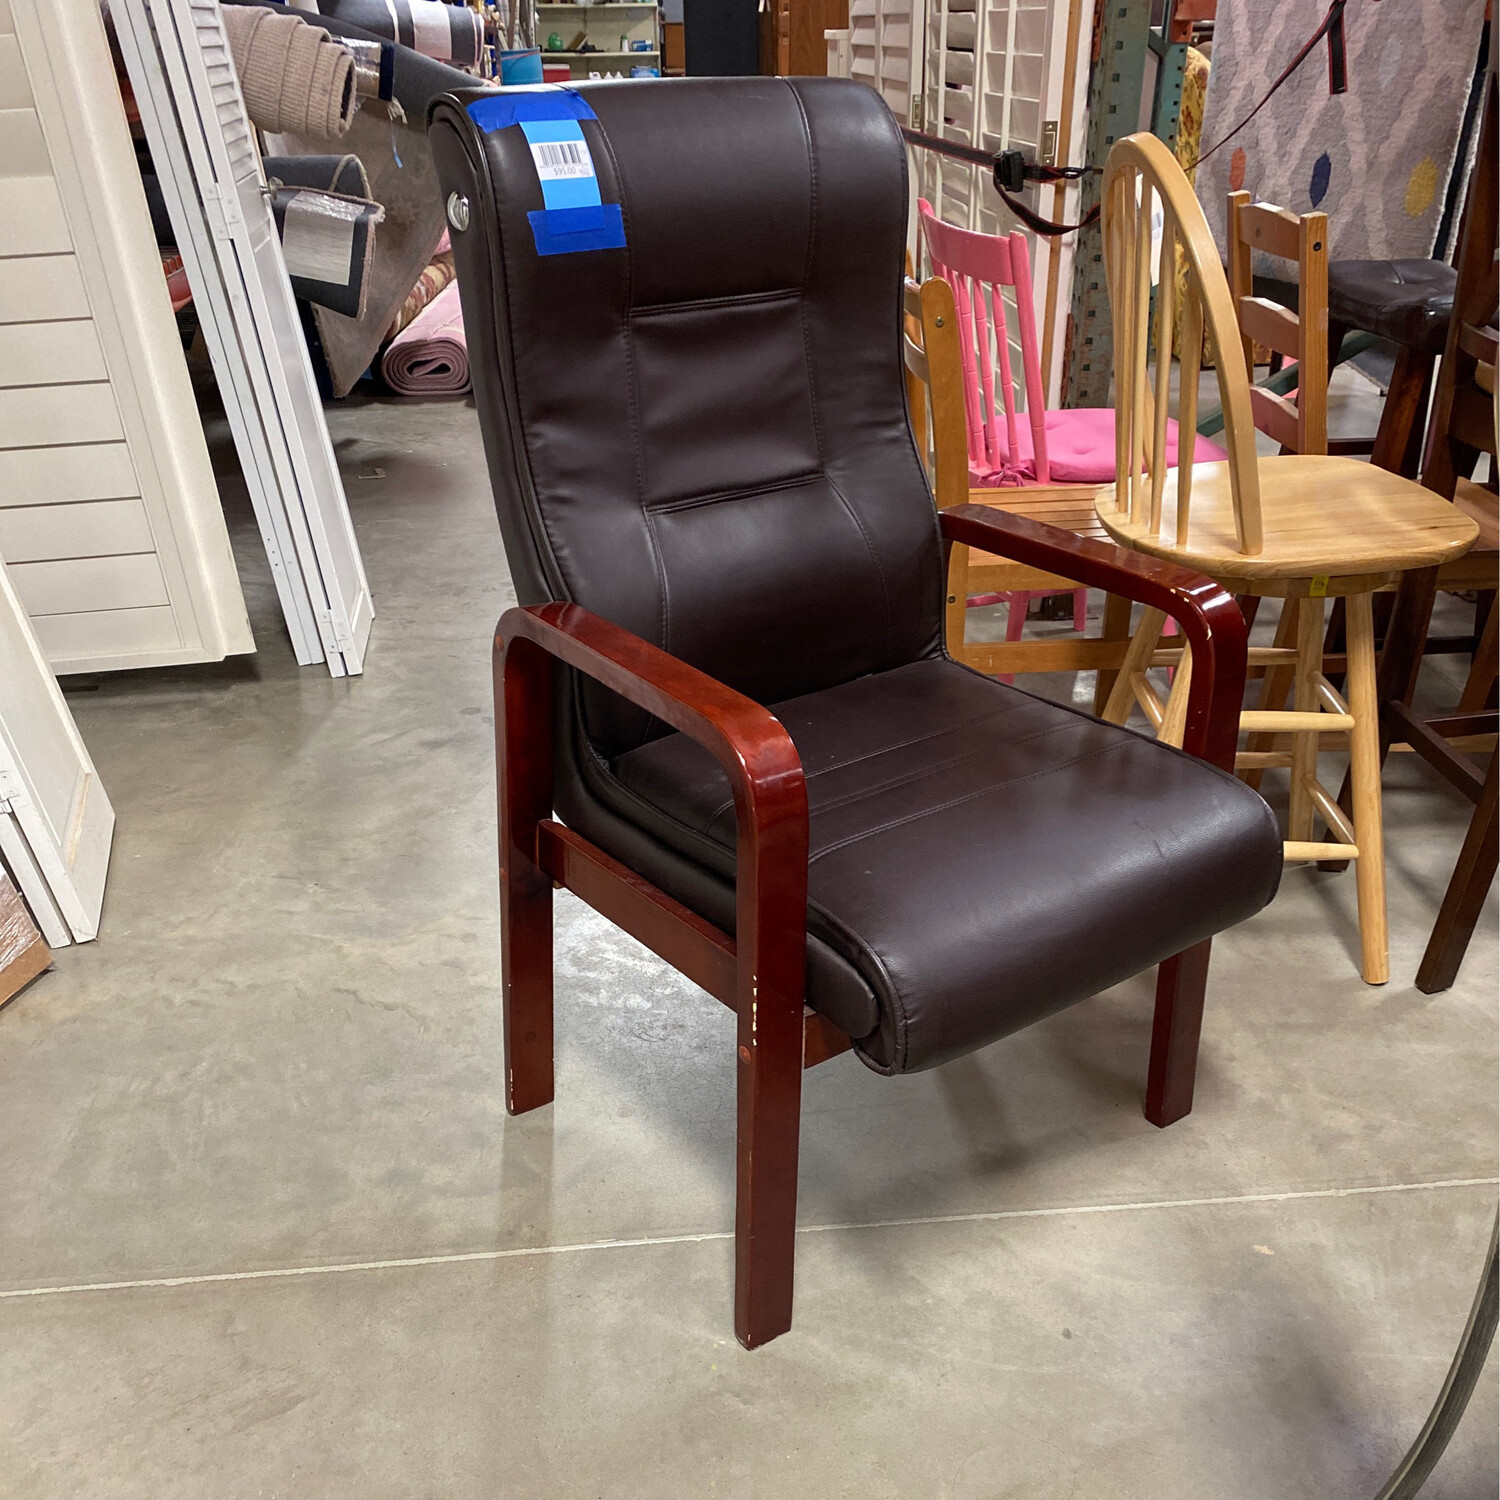 DARK BROWN LEATHER/WOOD OFFICE CHAIR